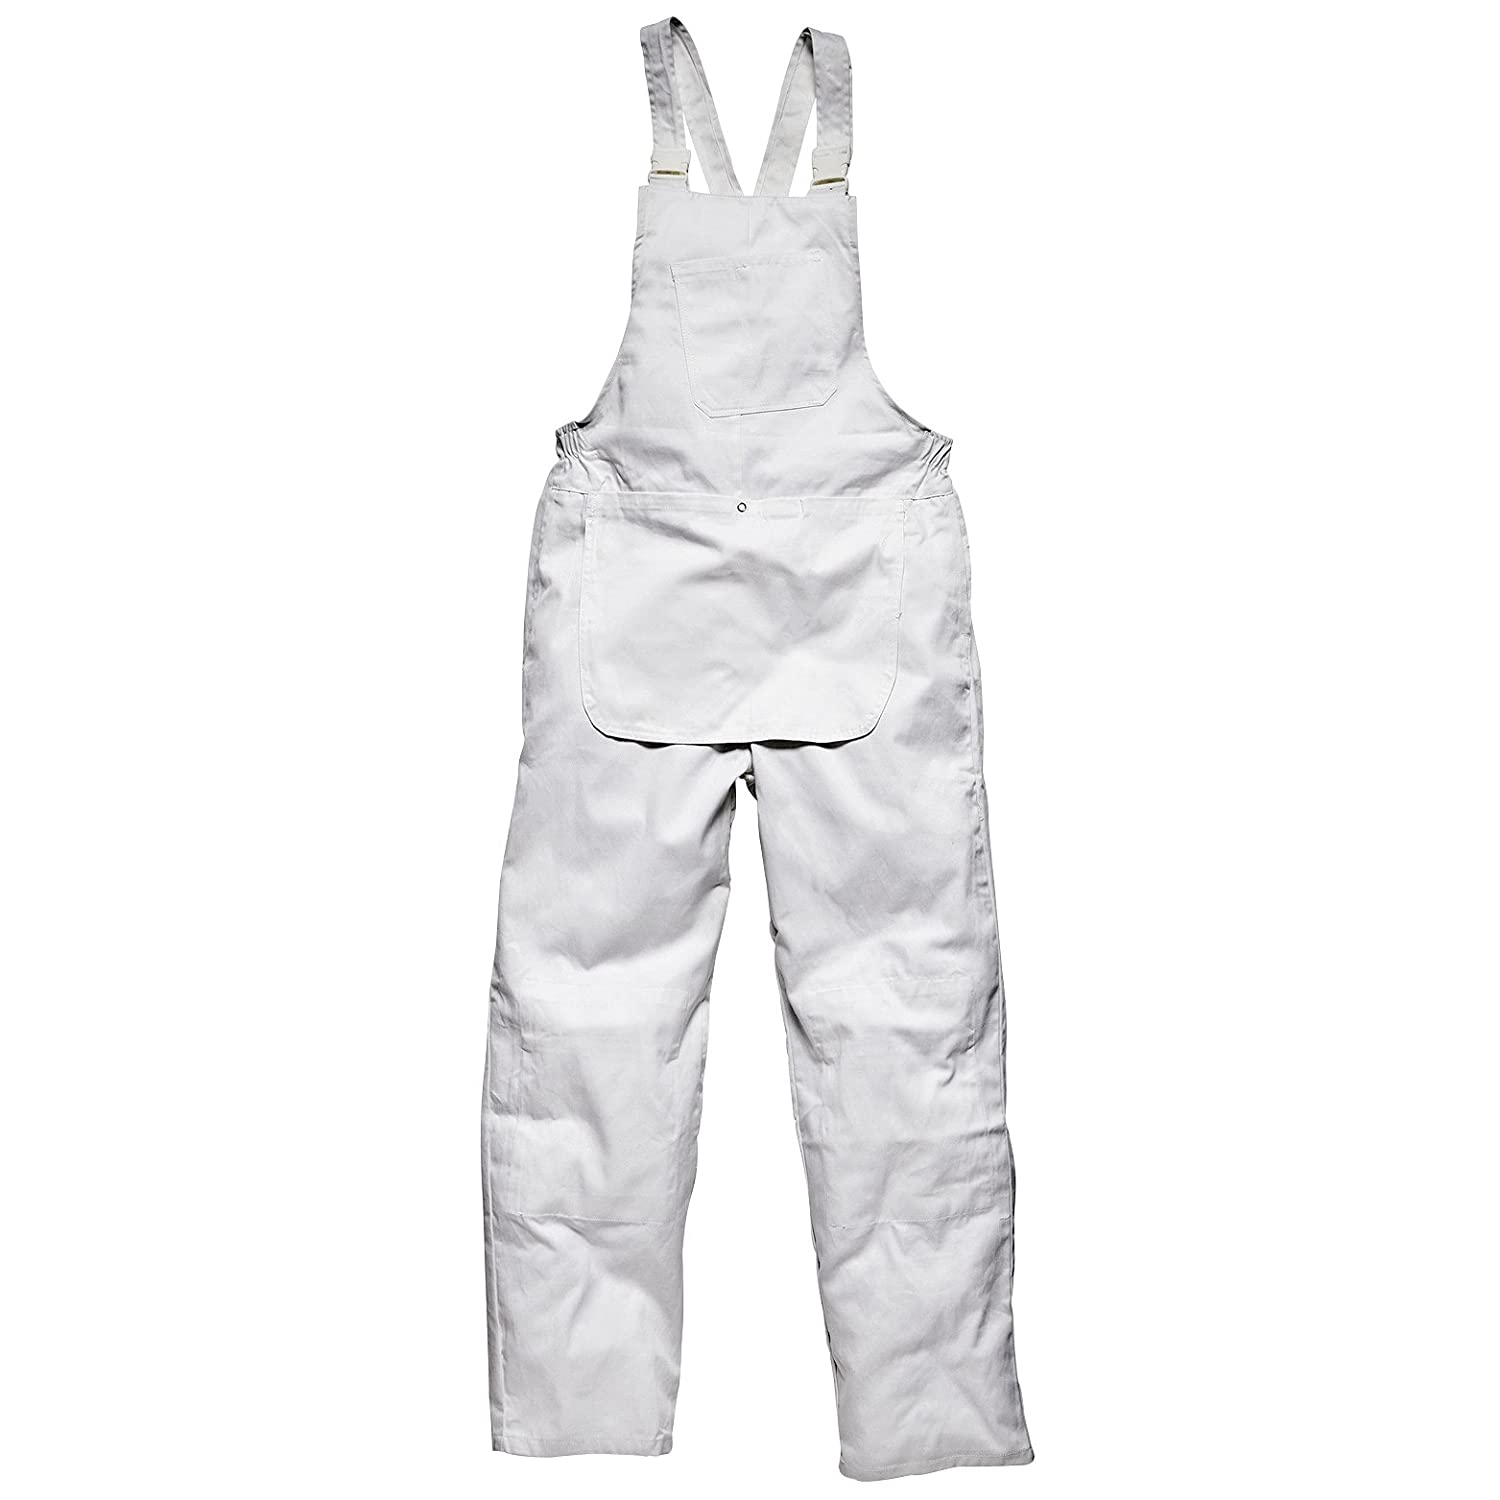 by Dickies Dickies Decorators Bib and Brace // Mens Workwear S White